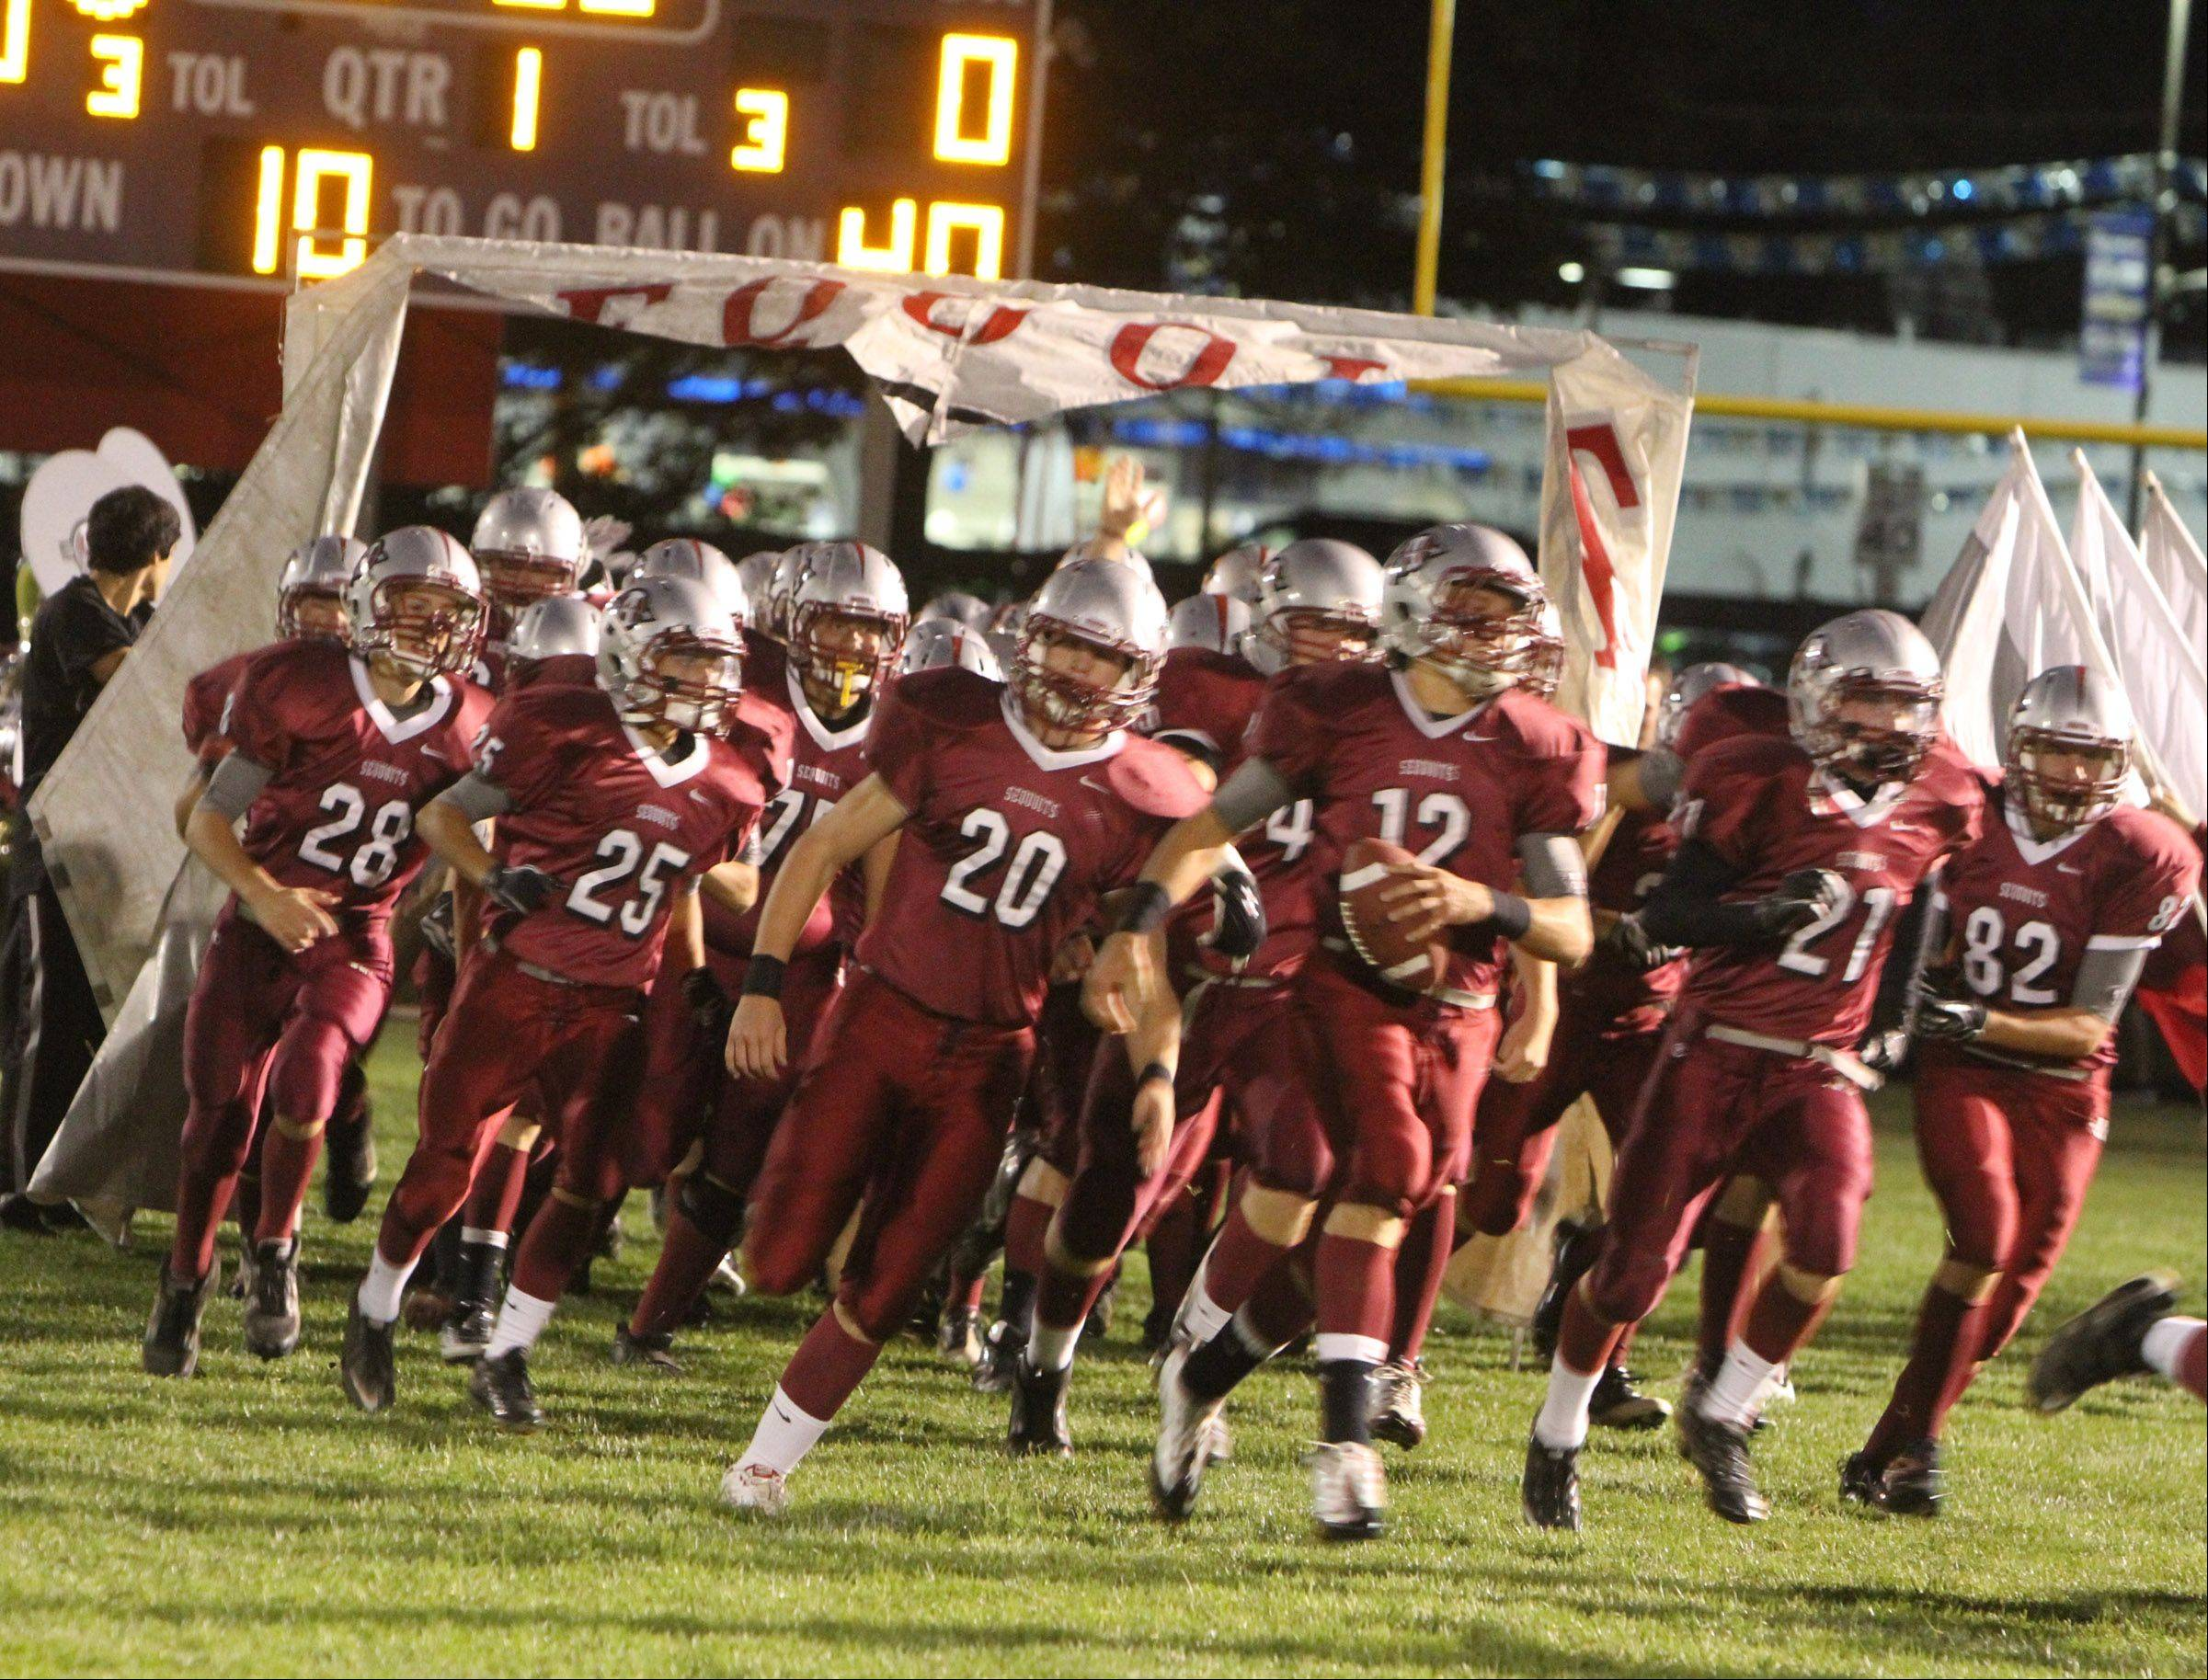 The Antioch football team takes the field in Vernon Hills on Friday, Sept. 16.